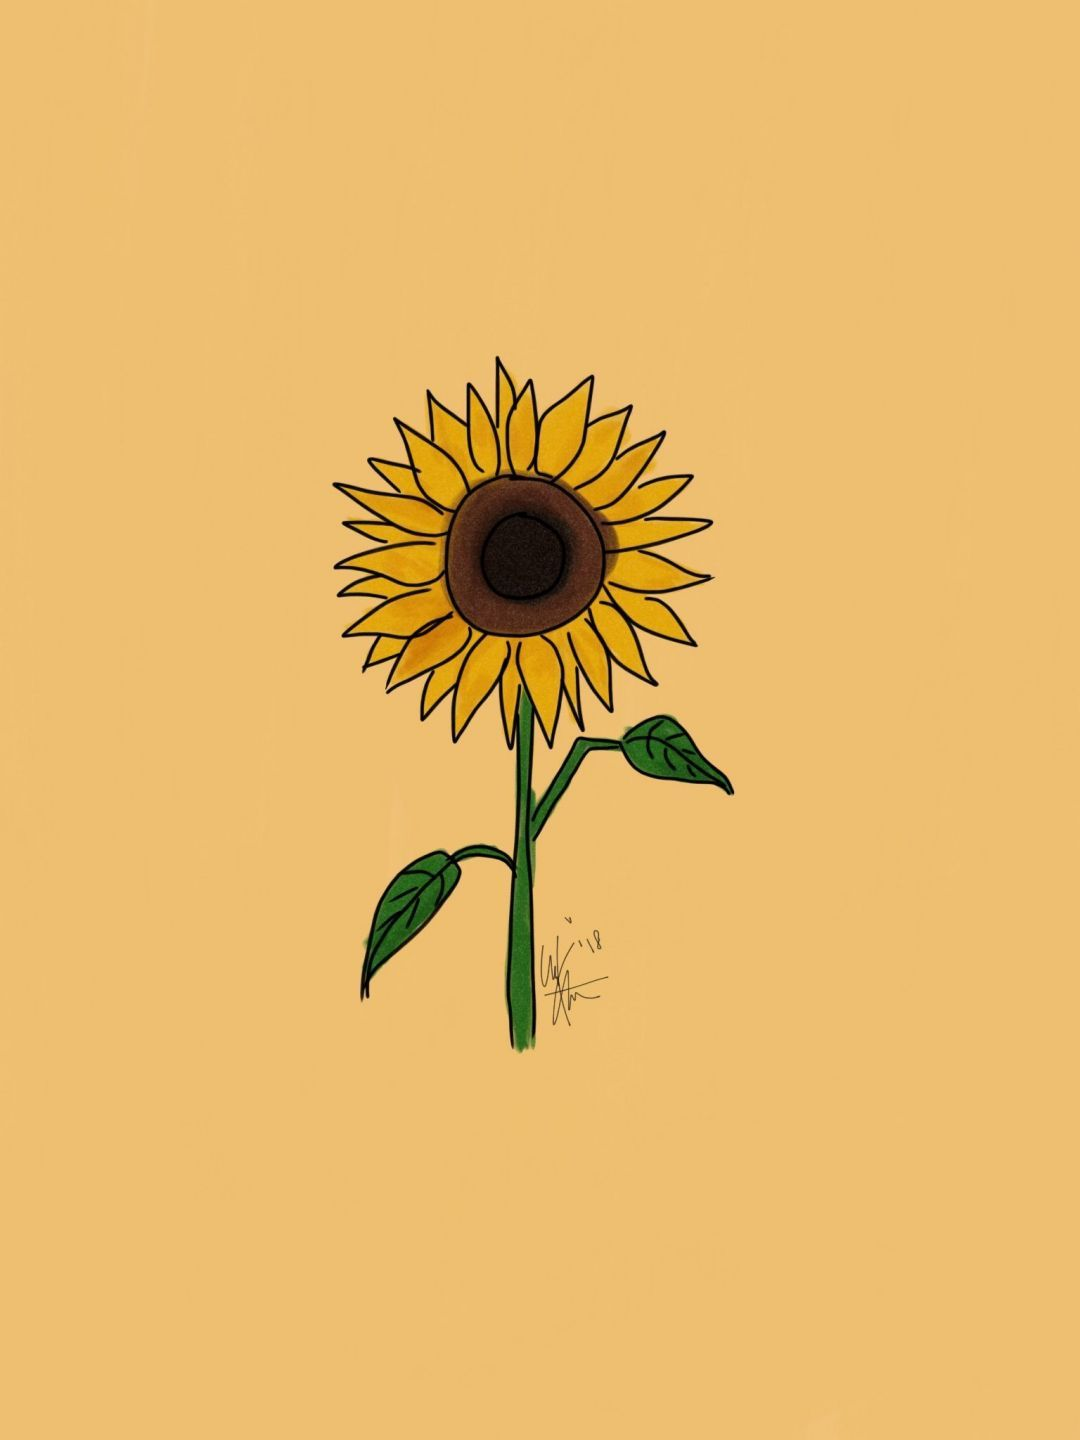 Yellow Aesthetic Sunflowers Hd Wallpapers